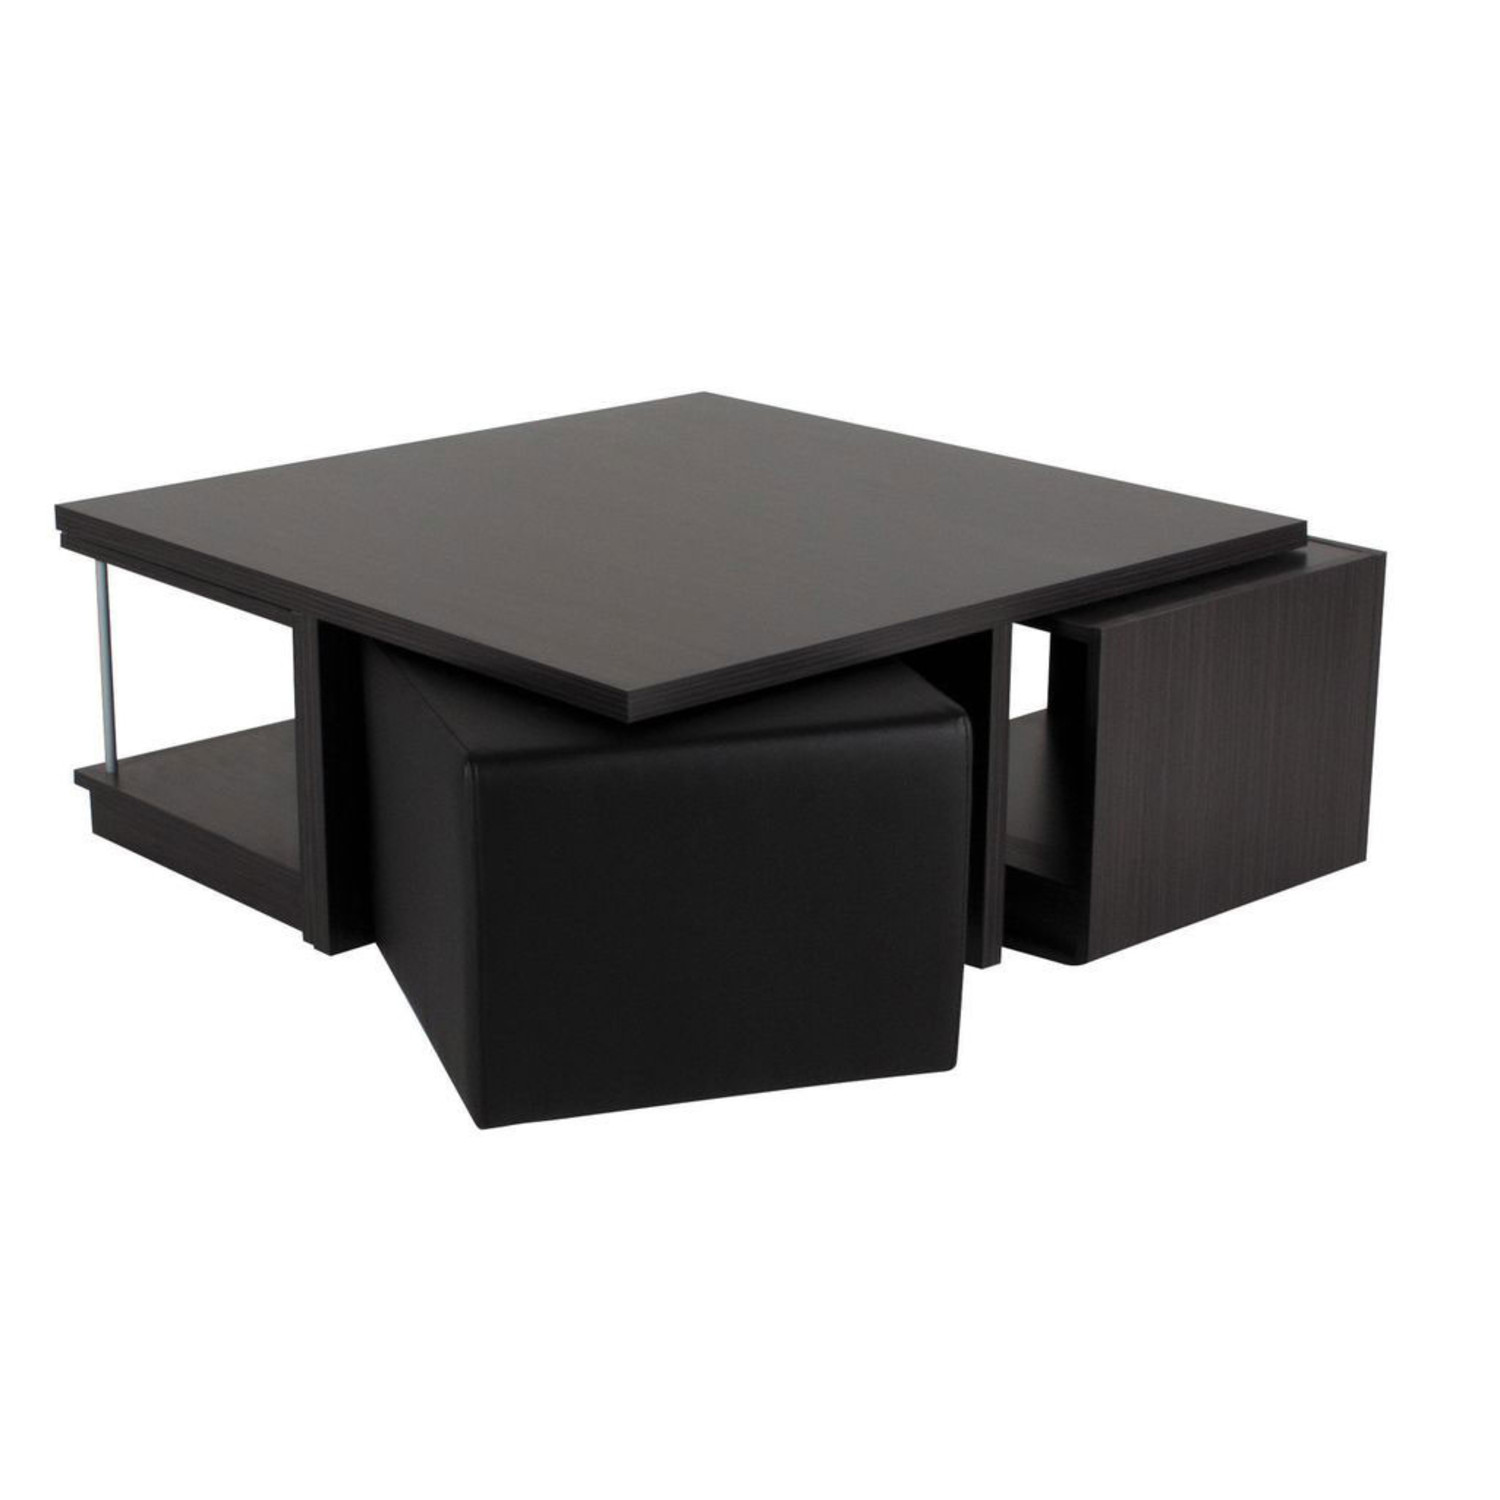 Modulo Coffee Table Smoke Lazzoni Touch of Modern